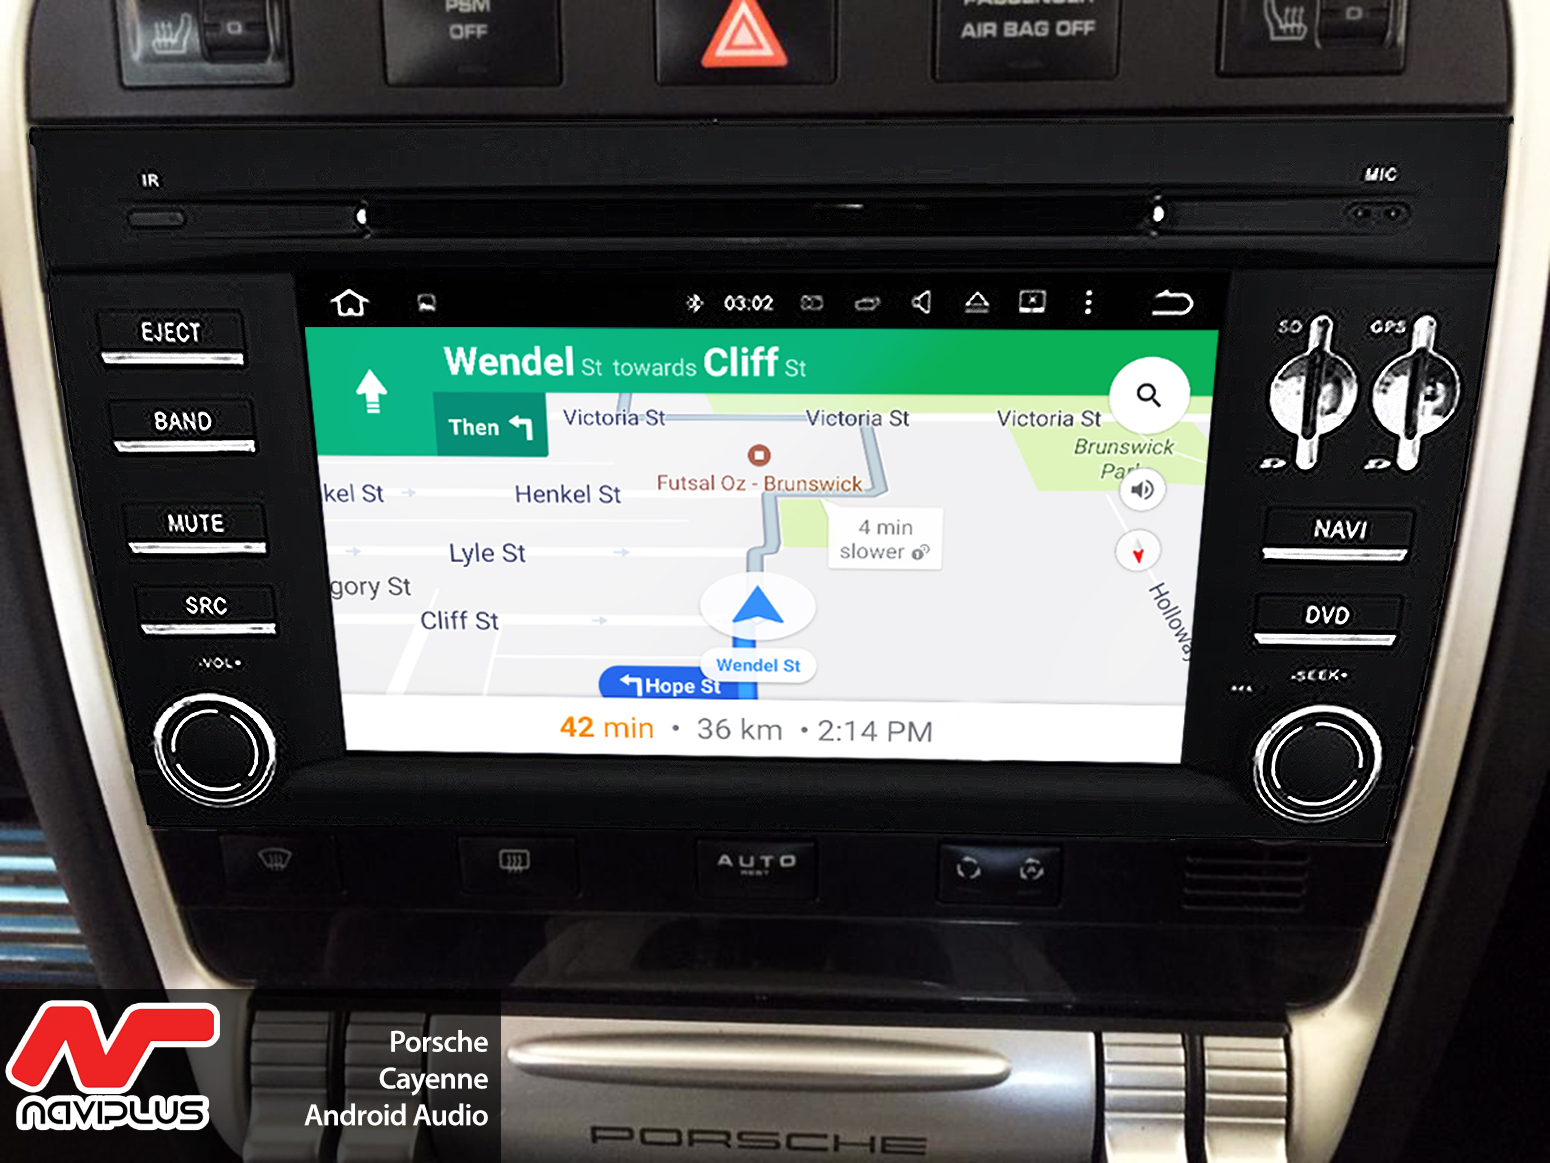 Upgrade your Porsche - Android Audio upgrade for your